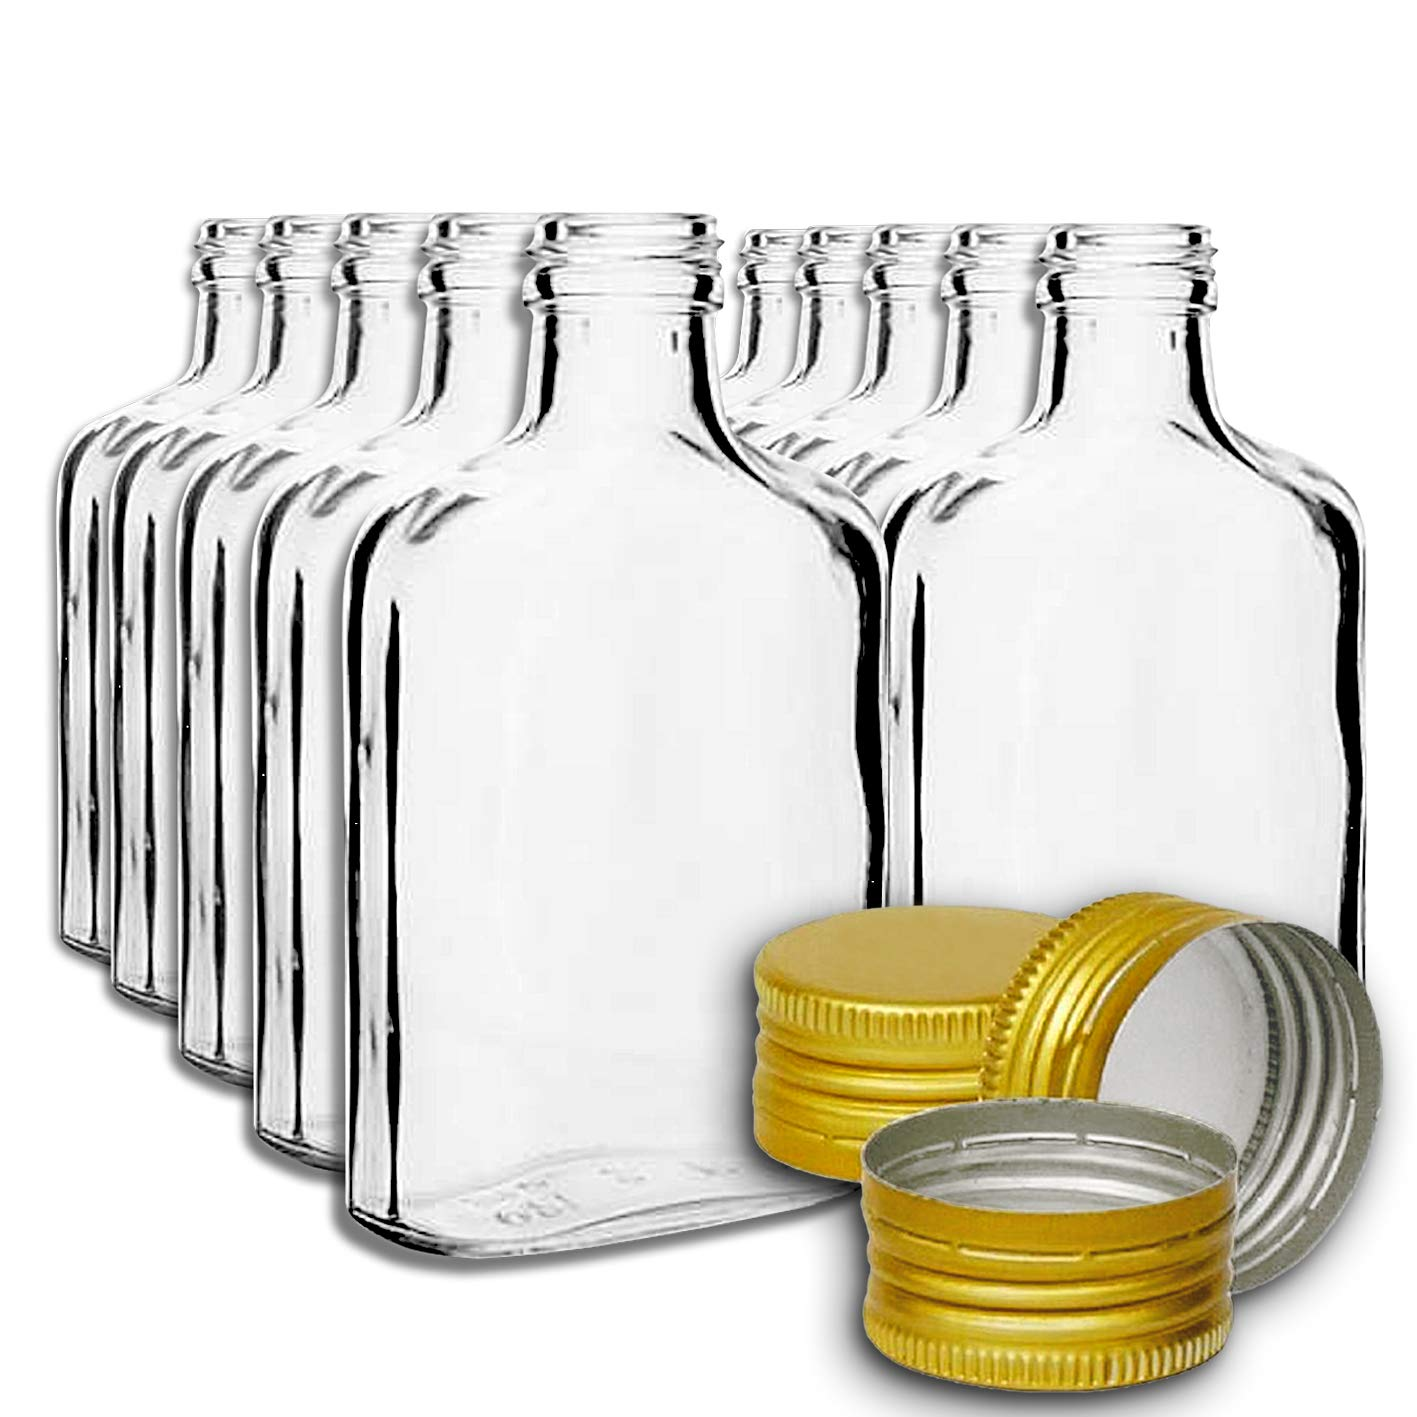 10 pocket flask bottles 200ml with GOLD screw caps for wine, whisky or spirits Biowin